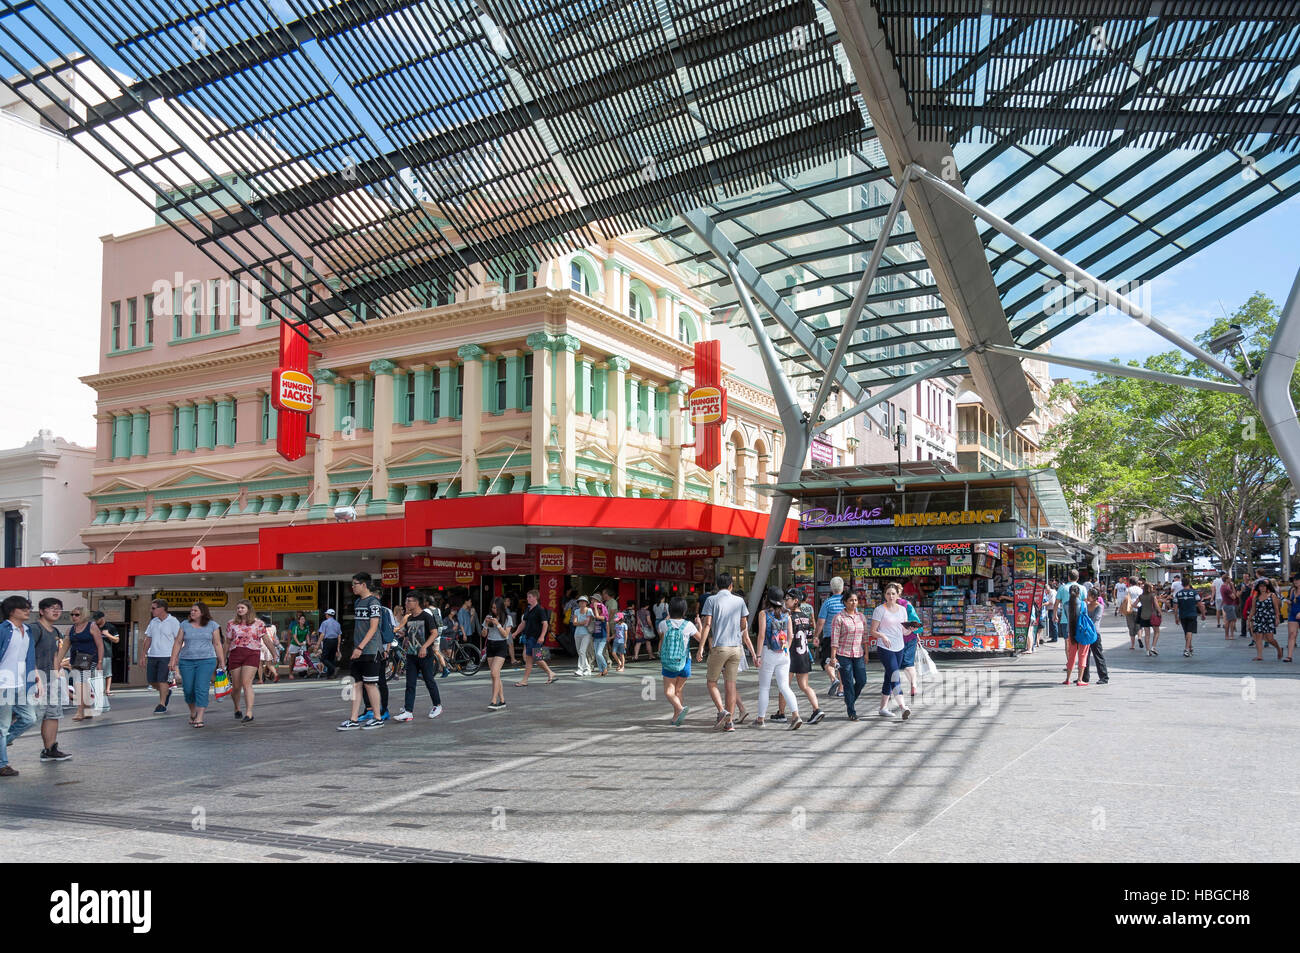 Queen Street Mall, Brisbane City, Brisbane, Queensland, Australia - Stock Image